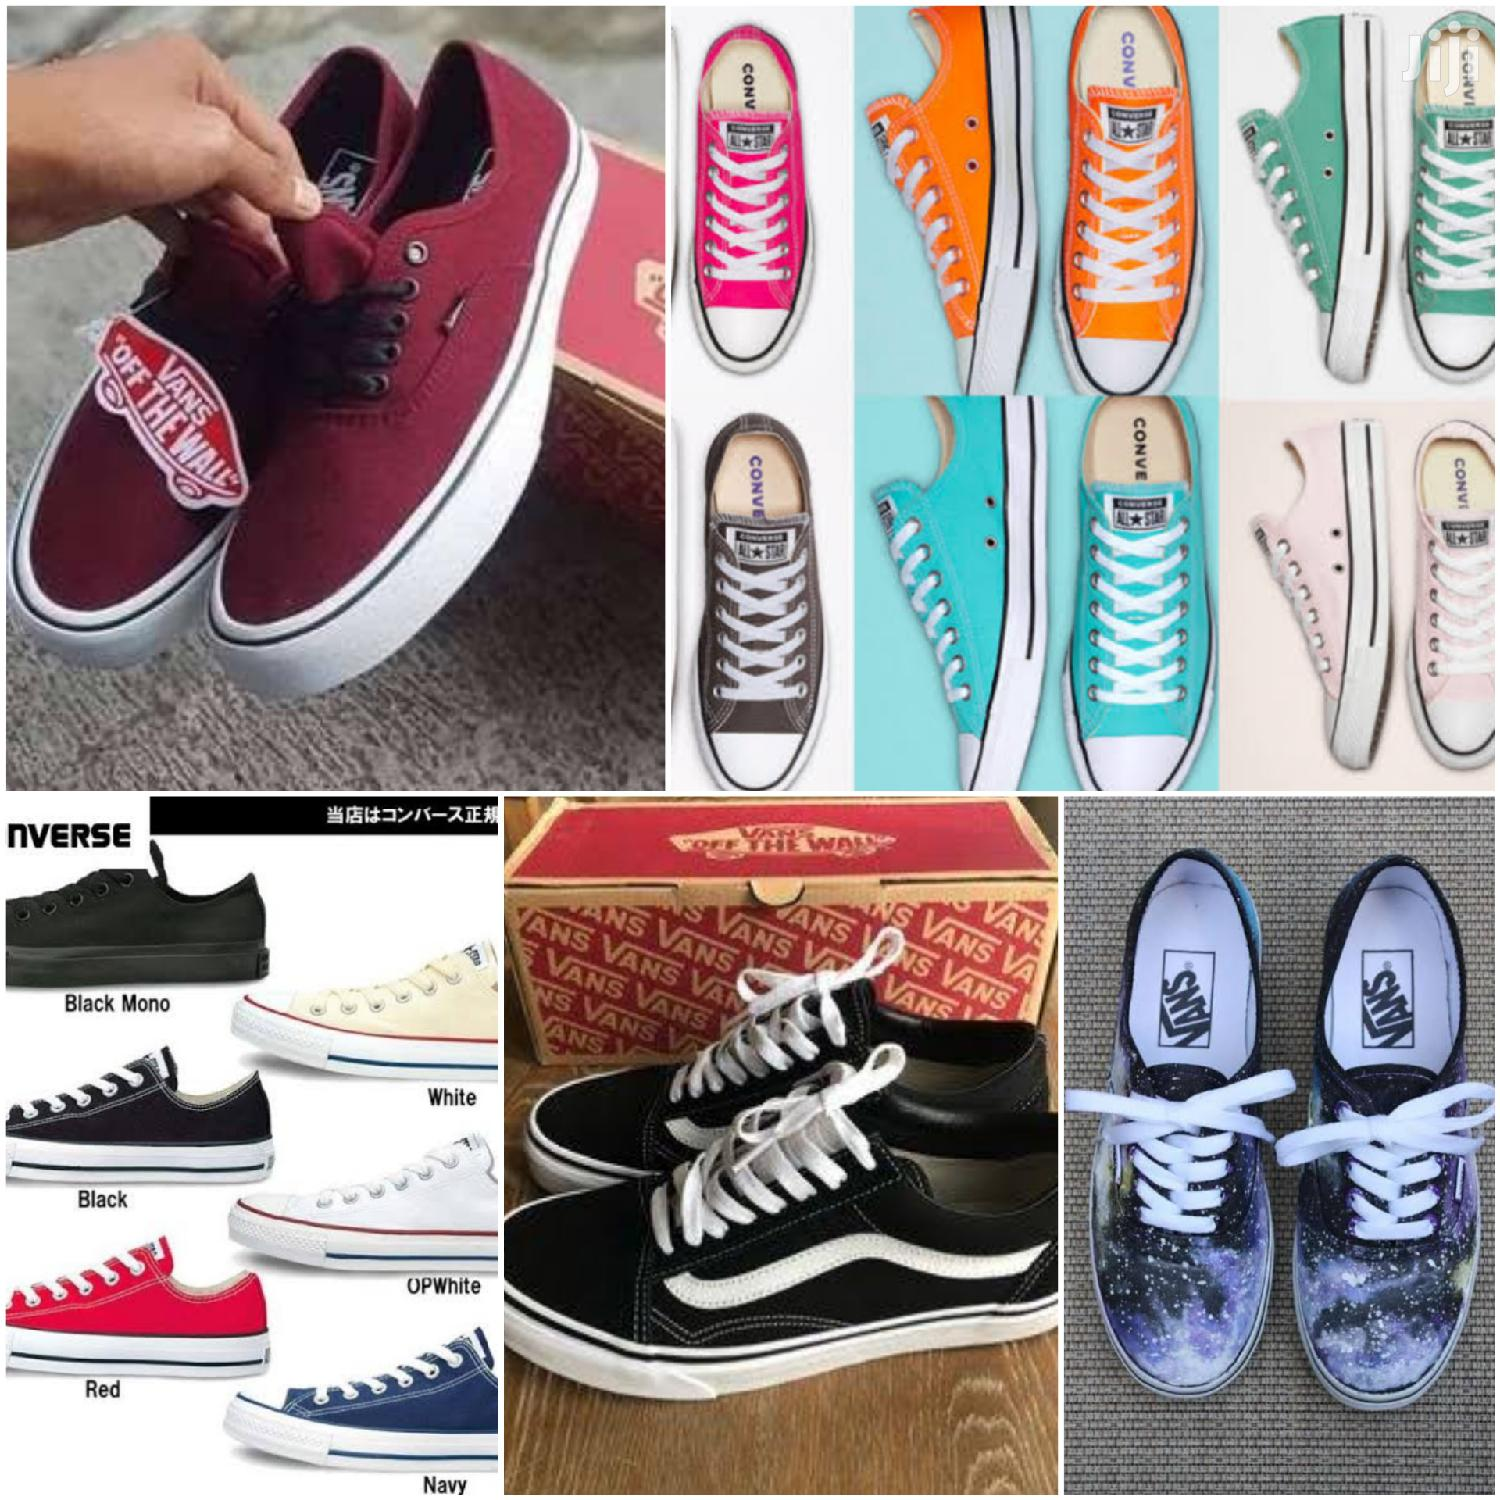 New Vans and Converse Shoes for Sale